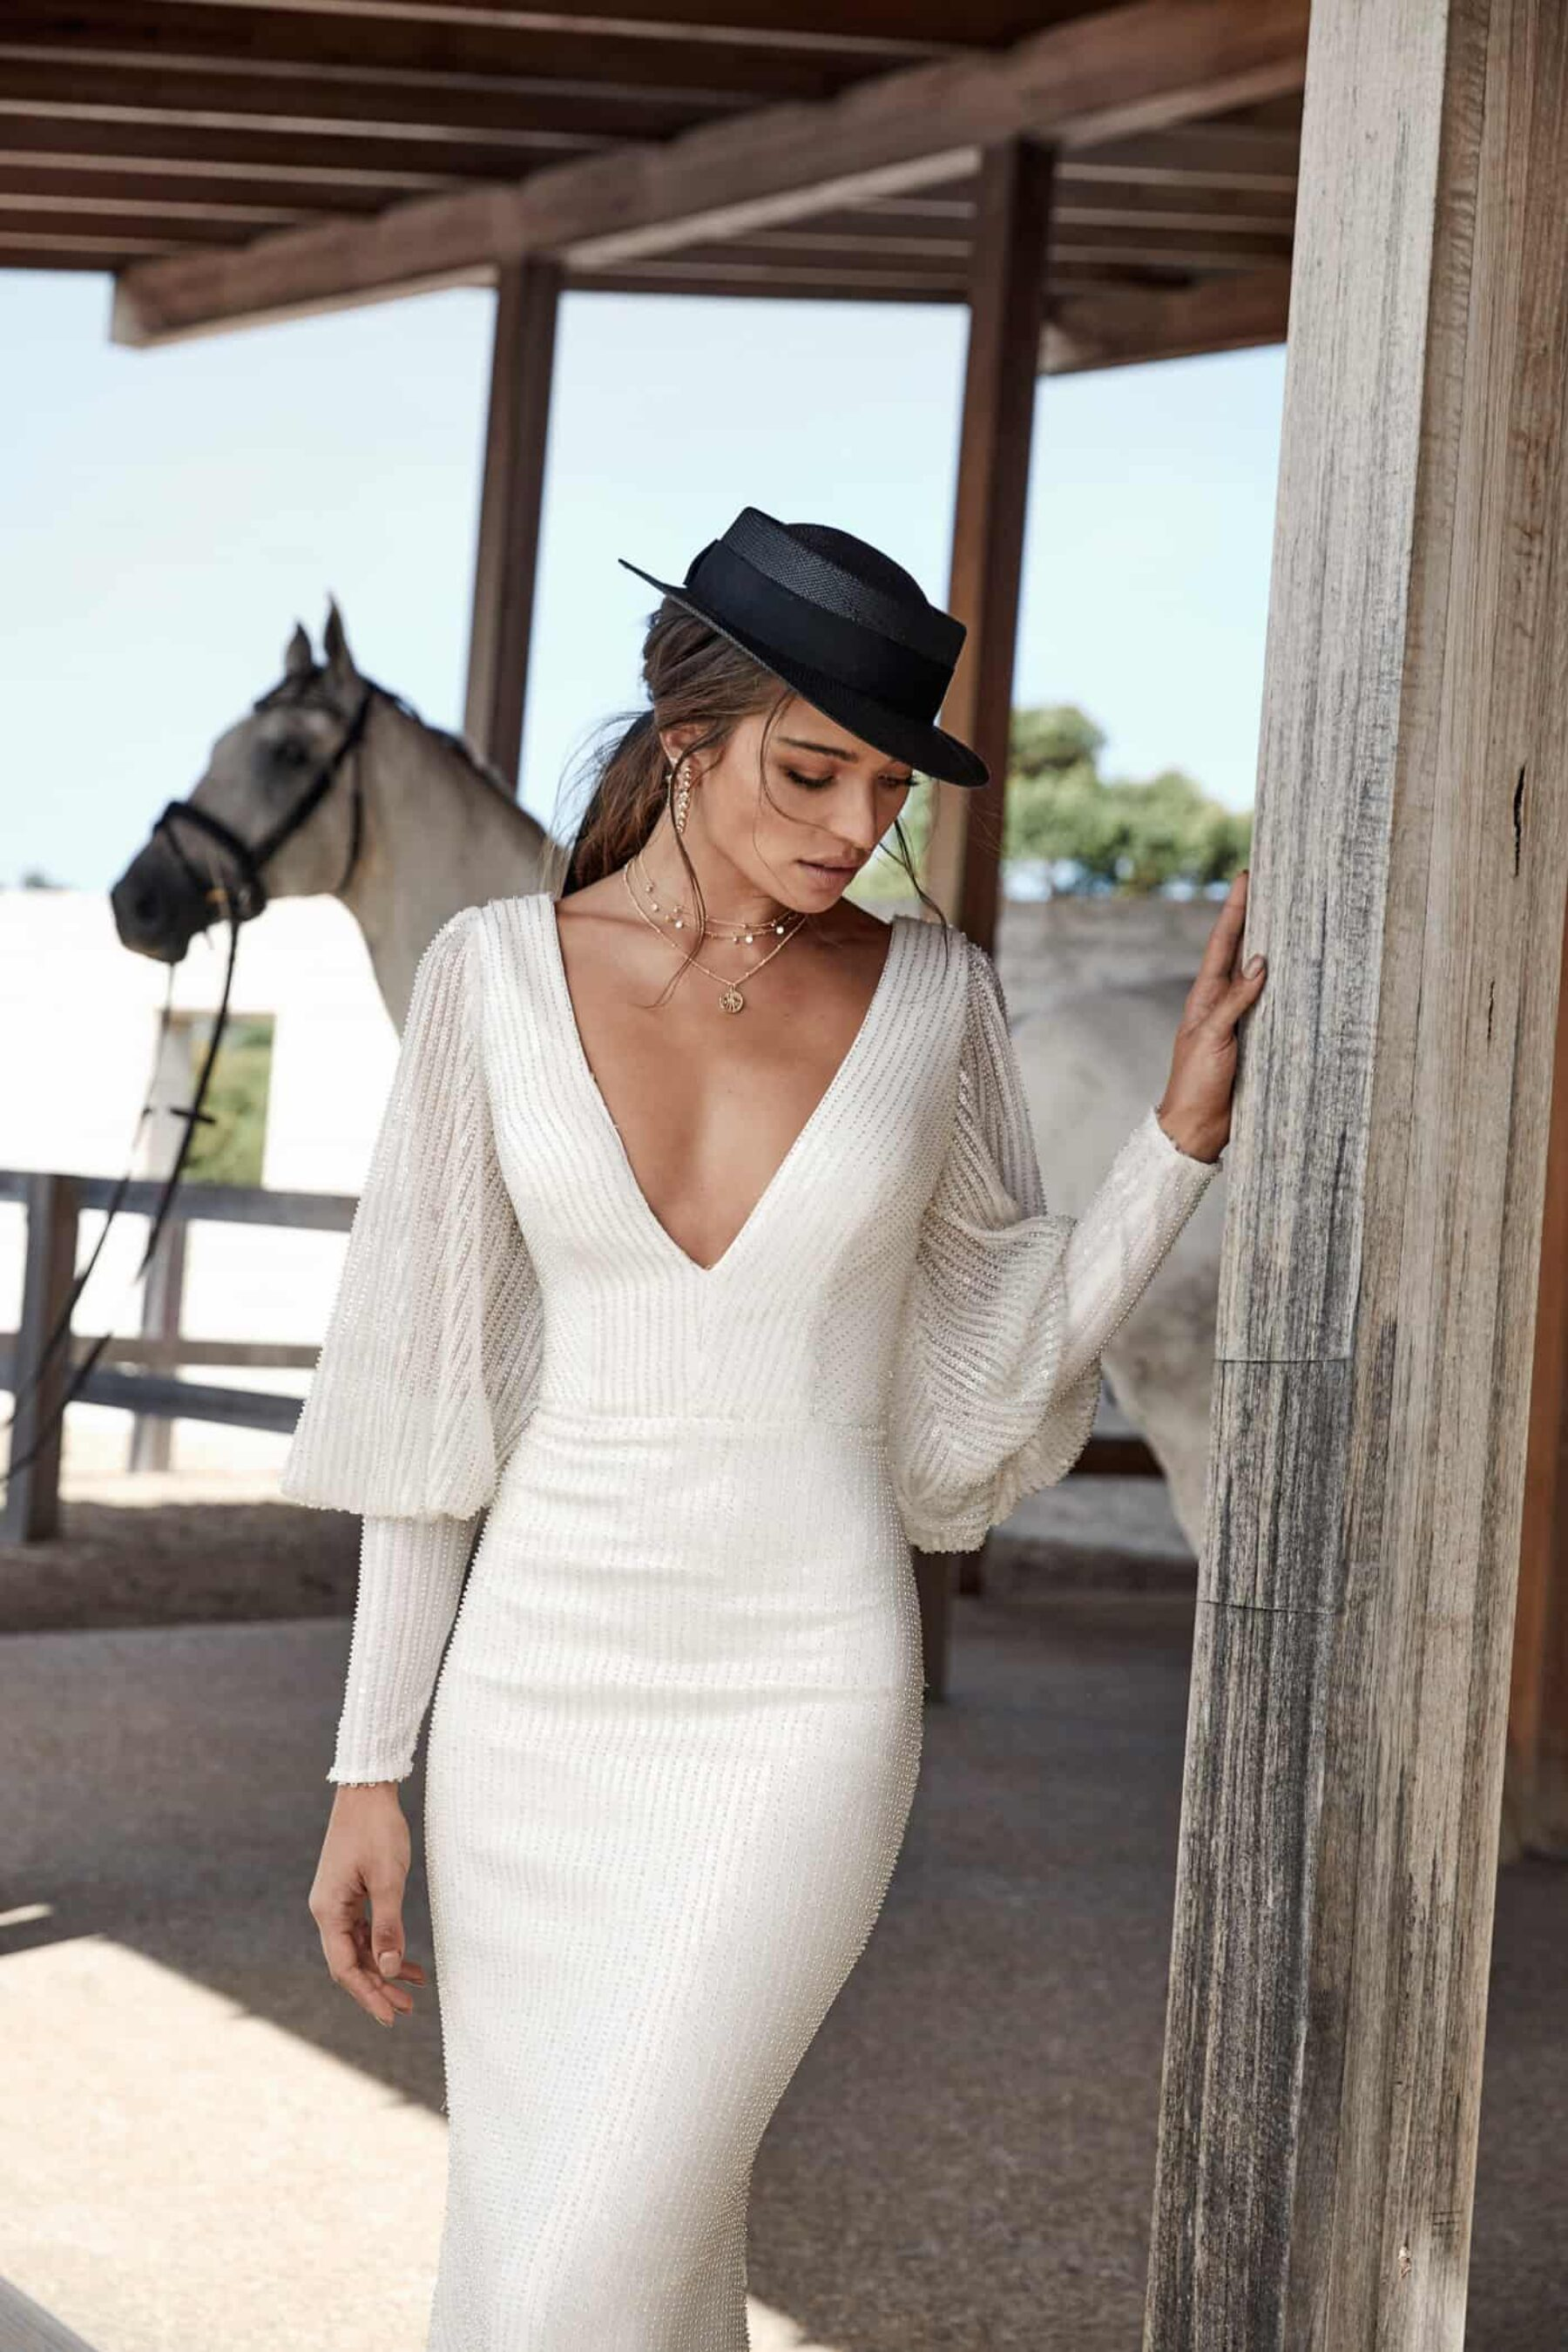 New Reign By Chosen By One Day Bridal Nouba Com Au New Reign